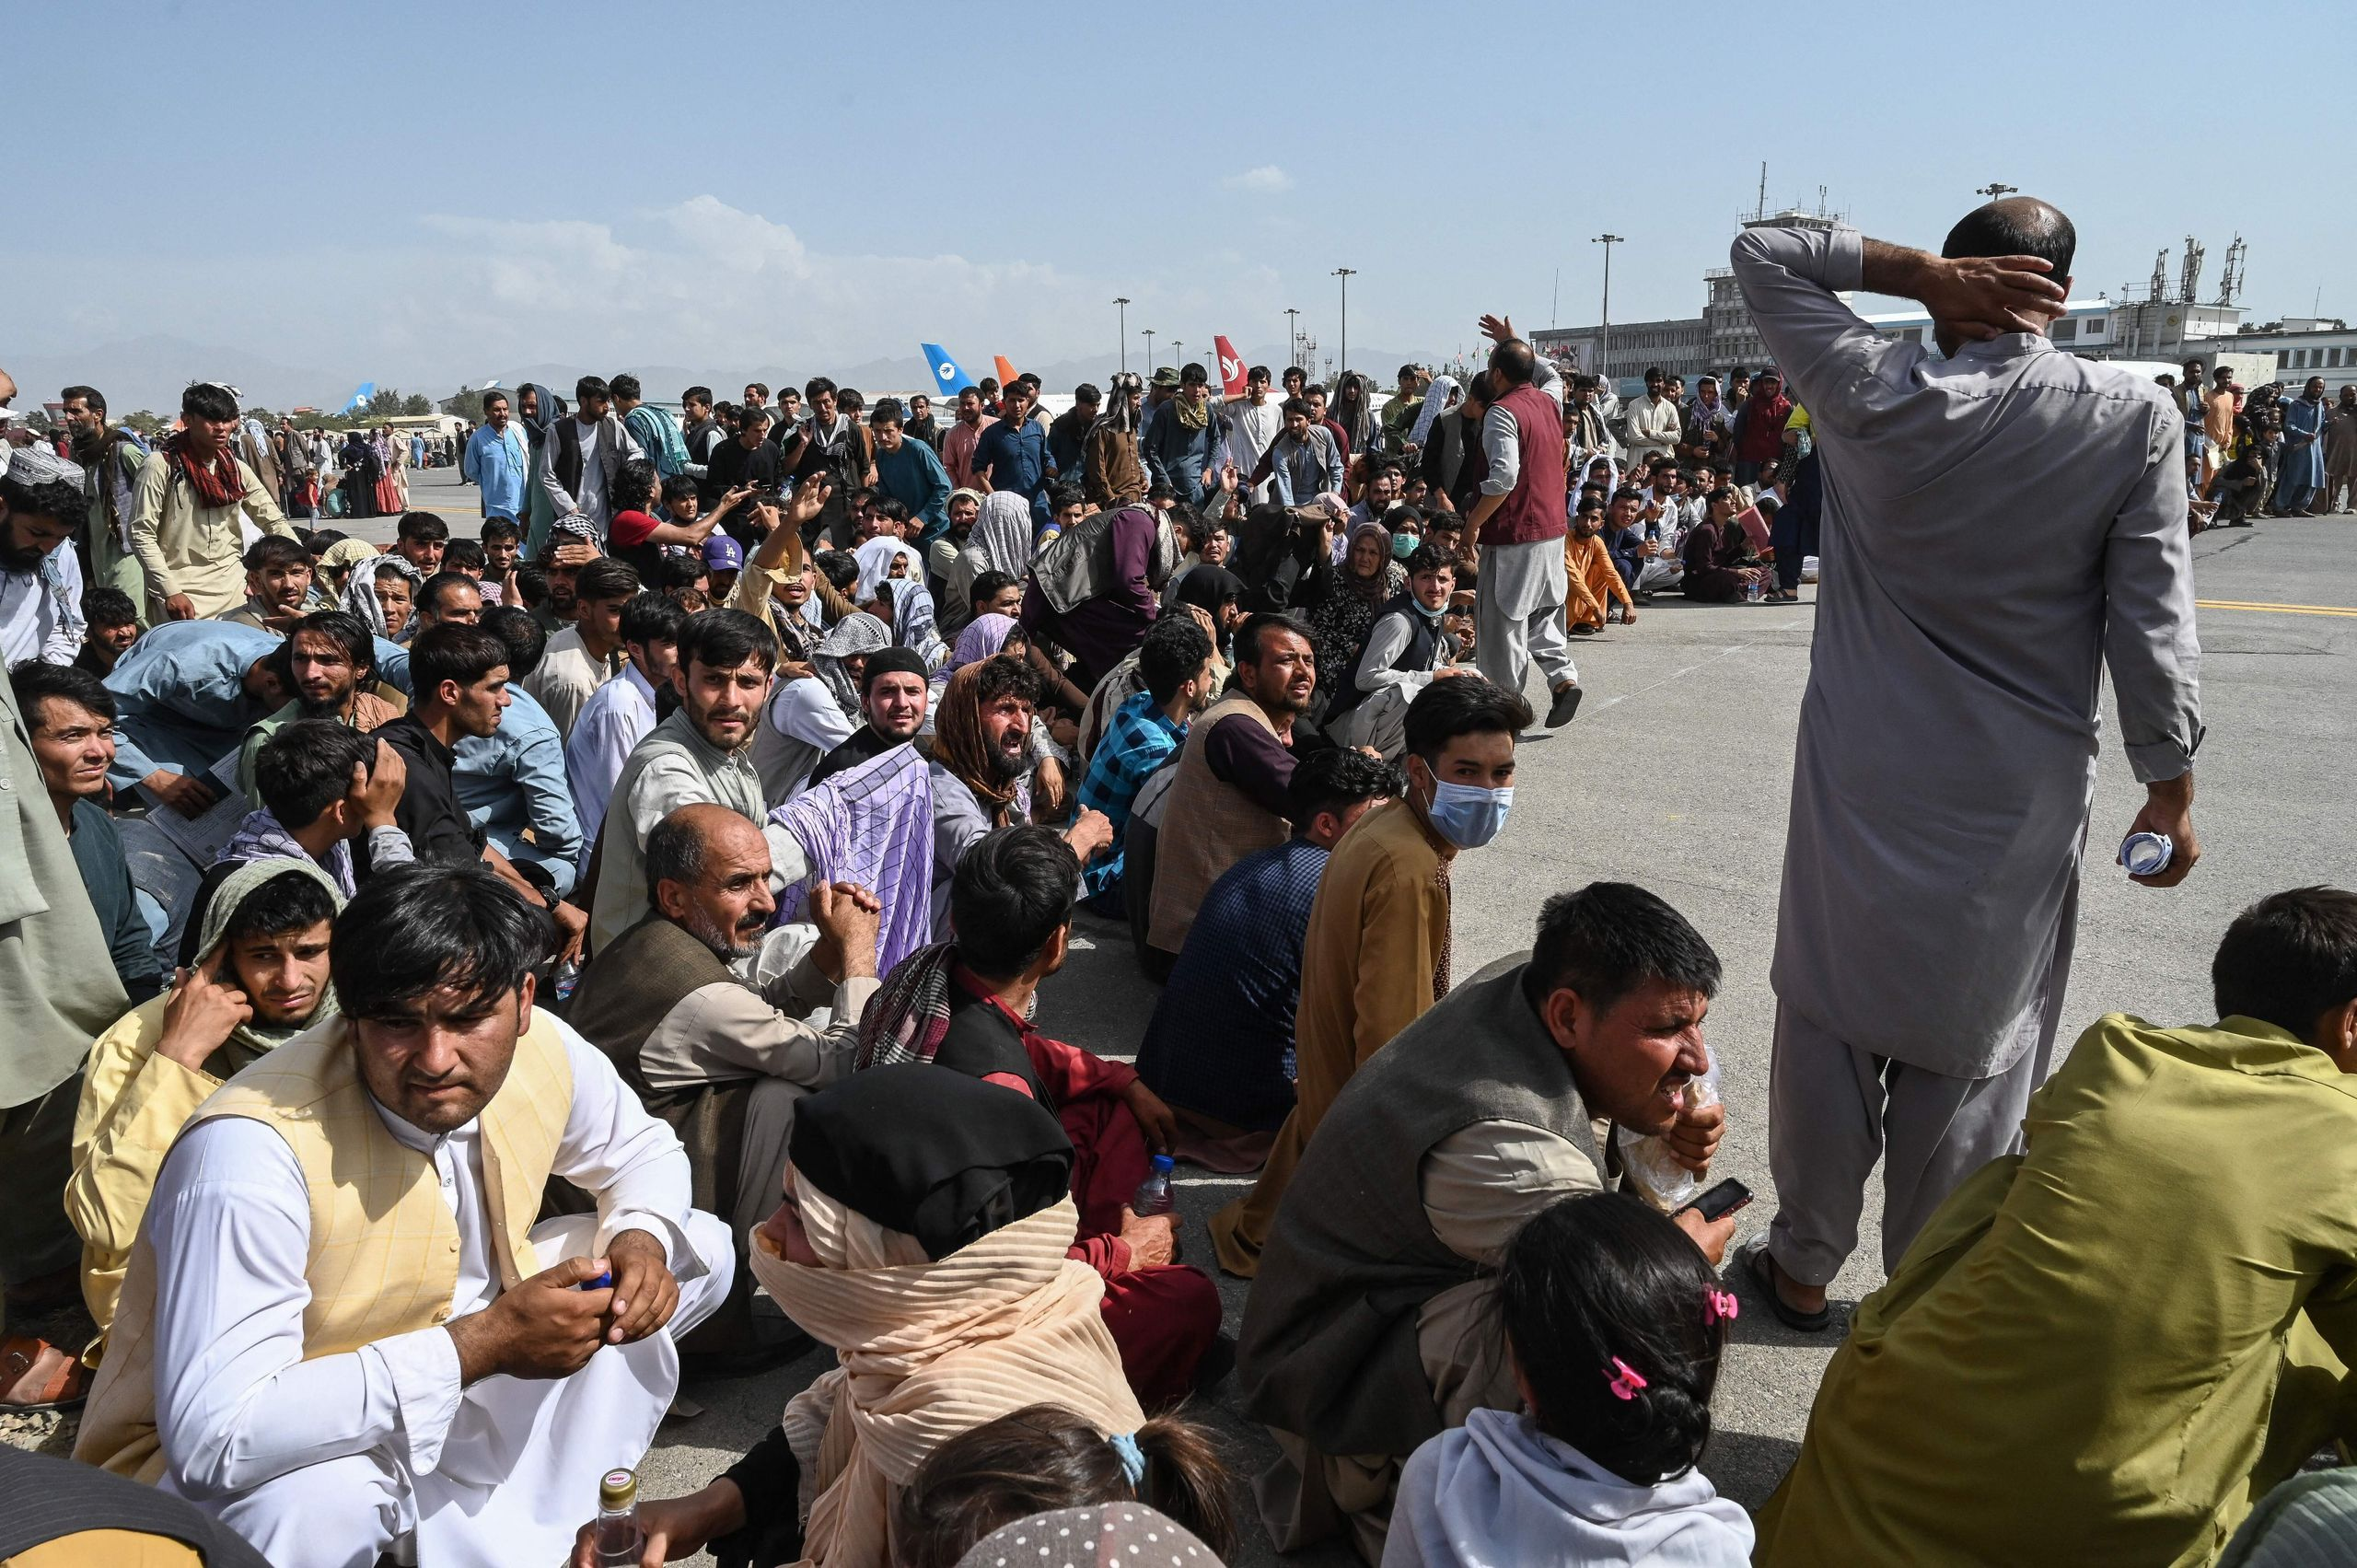 Fall of Kabul: Afghan Refugees Expected to Surge Toward Turkey and Europe